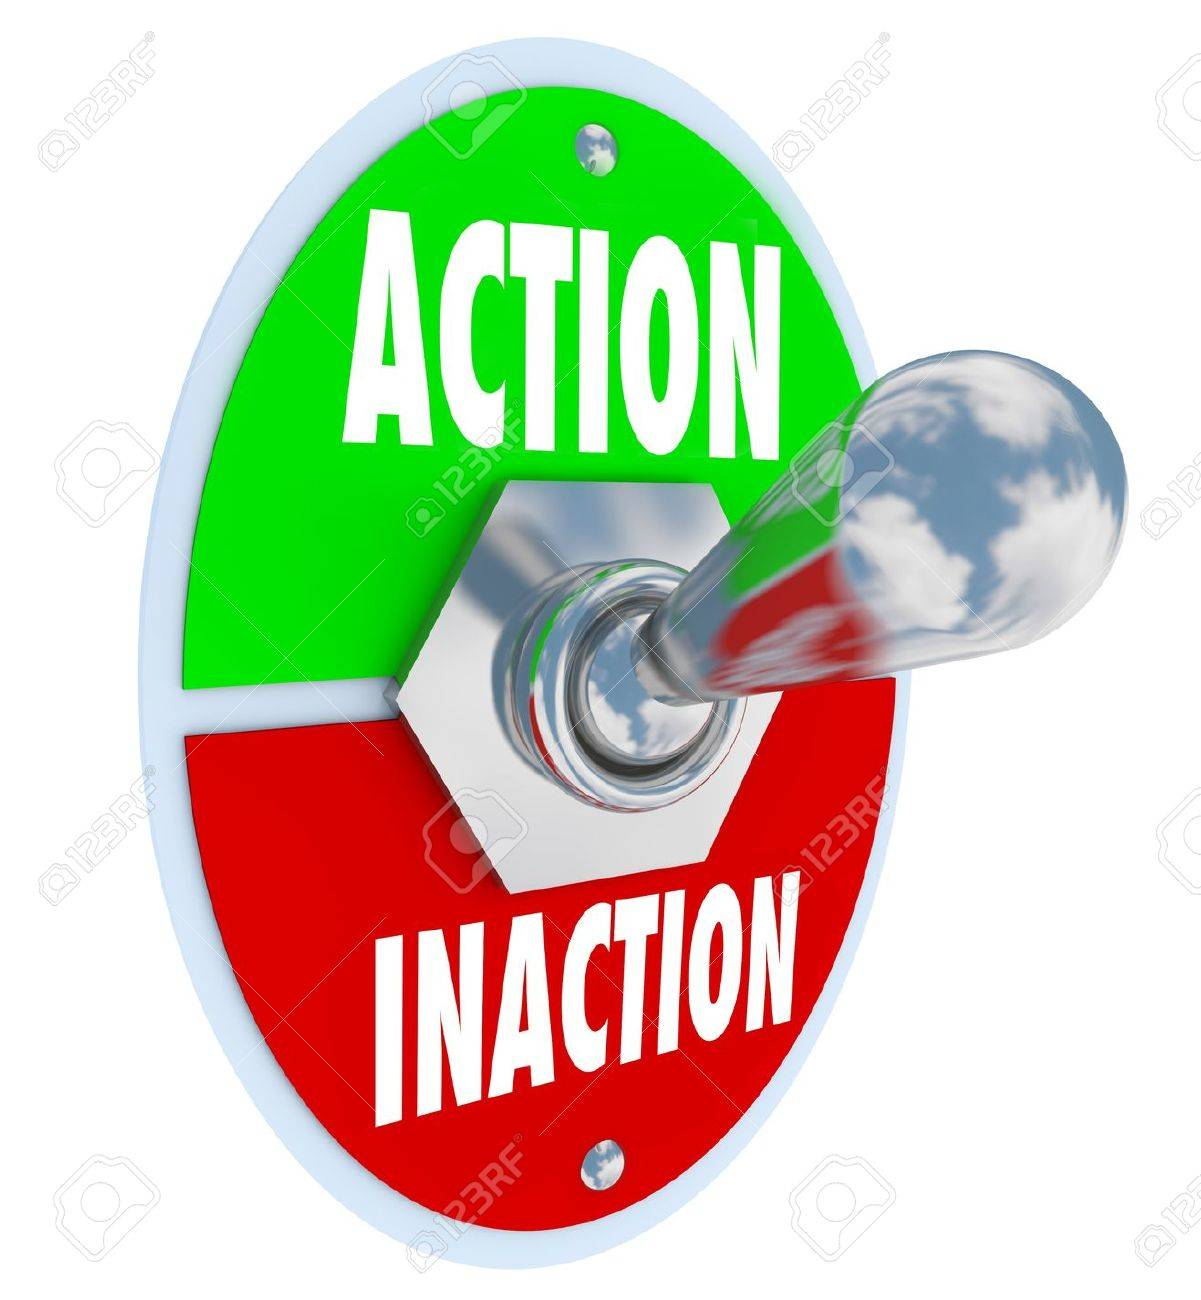 A metal toggle switch with plate reading Action and Inaction, with the switch in the active position to symbolize initiative, drive, and taking charge of a situation Stock Photo - 17232383